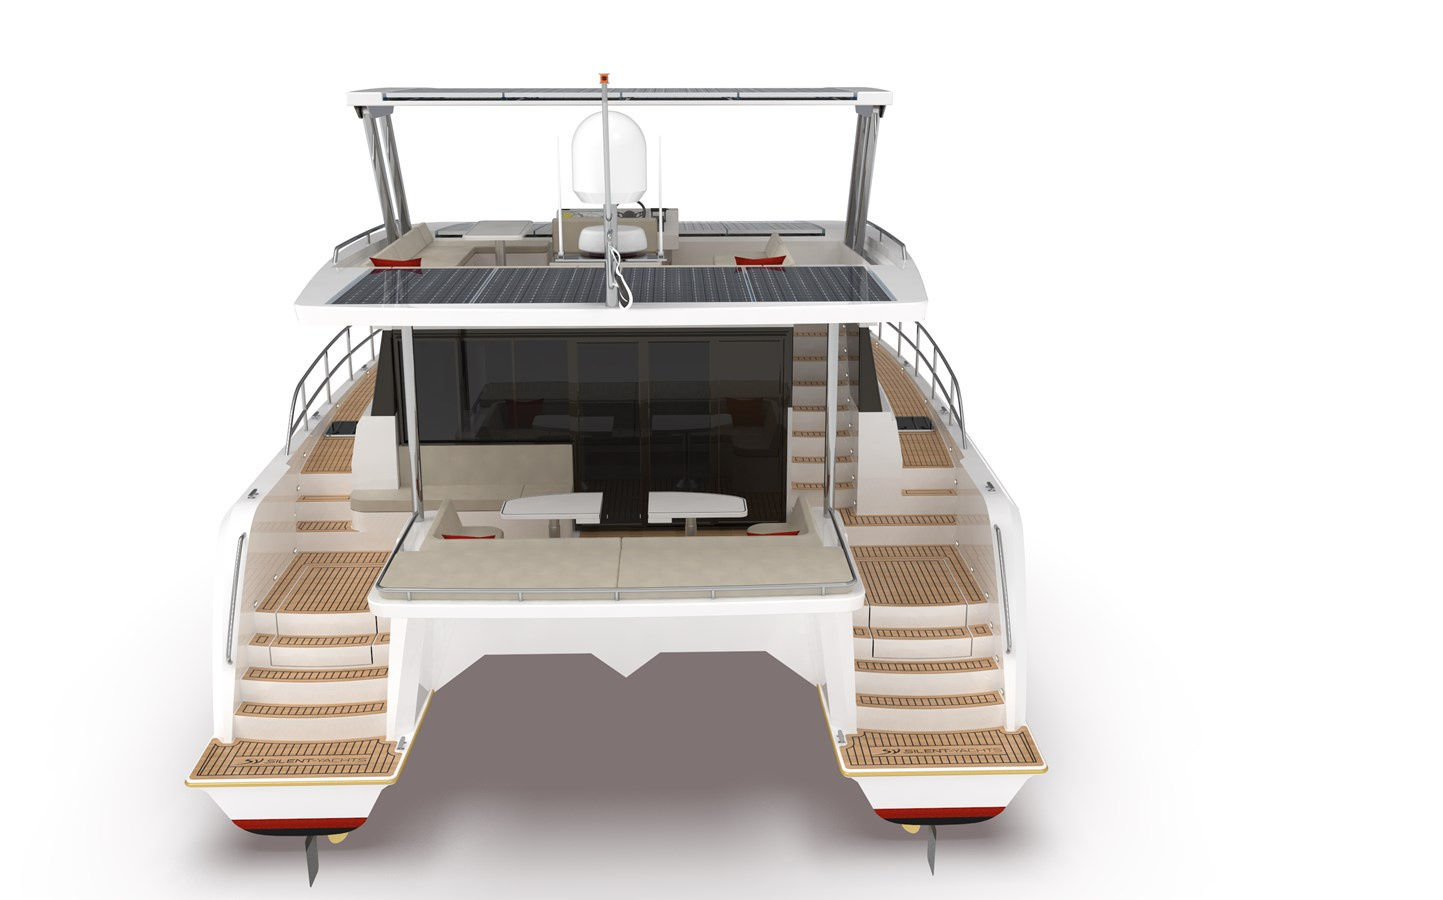 Electric Yachts Silent Yachts 44 Aft Perspective 2020 SILENT YACHTS SILENT 44 Catamaran 2771195